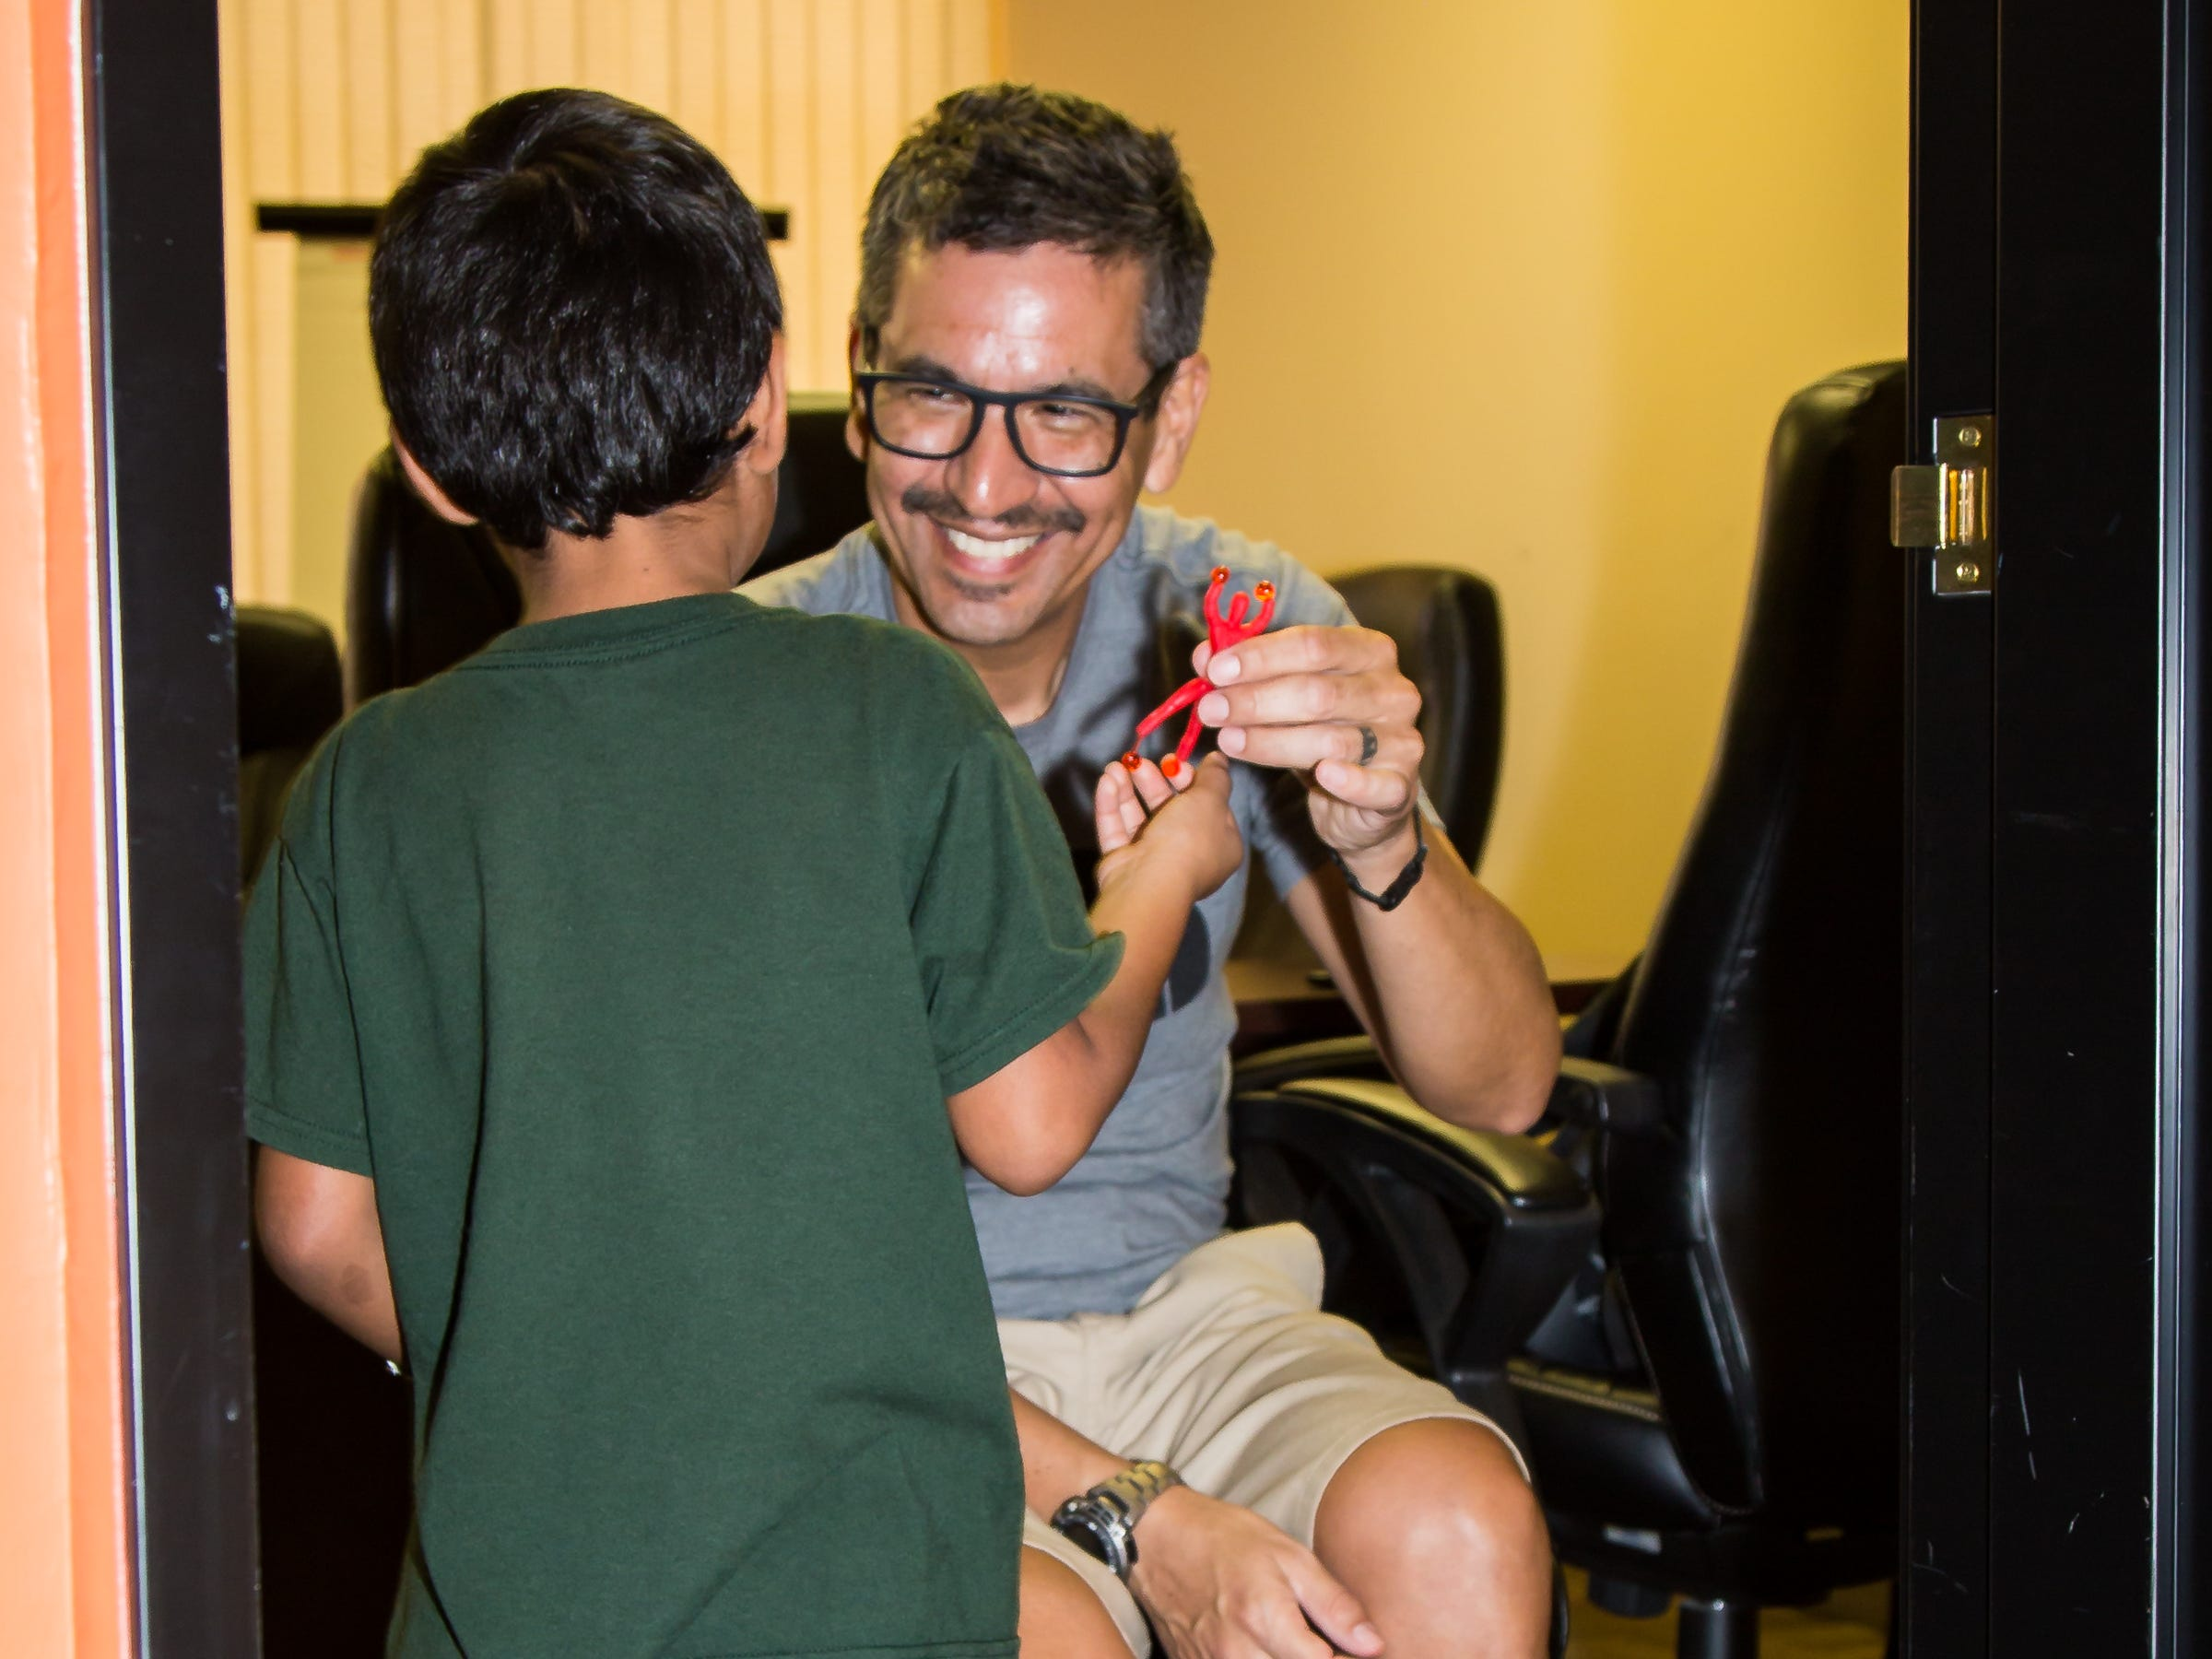 A pastor helps a boy in Phoenix.